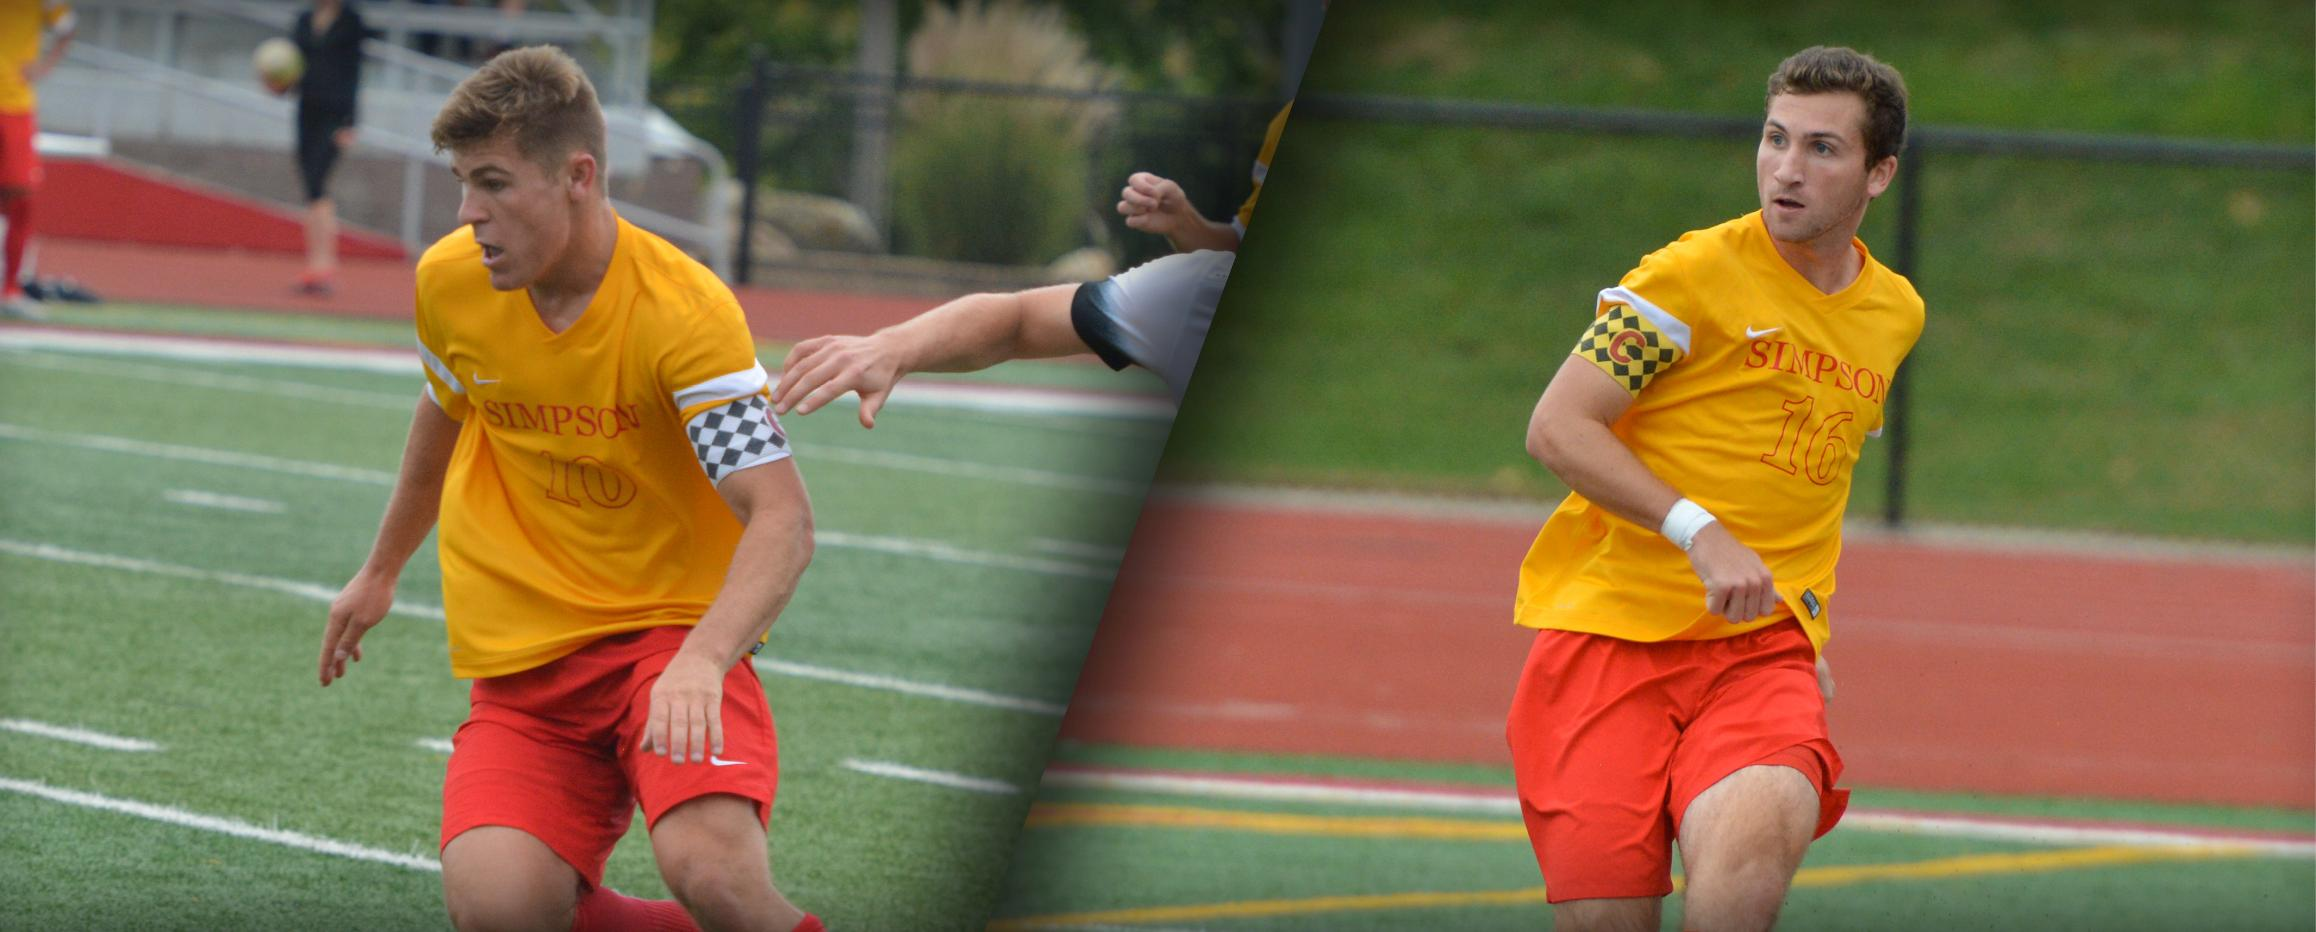 Pochop, Harry sweep IIAC Player of the Week honors